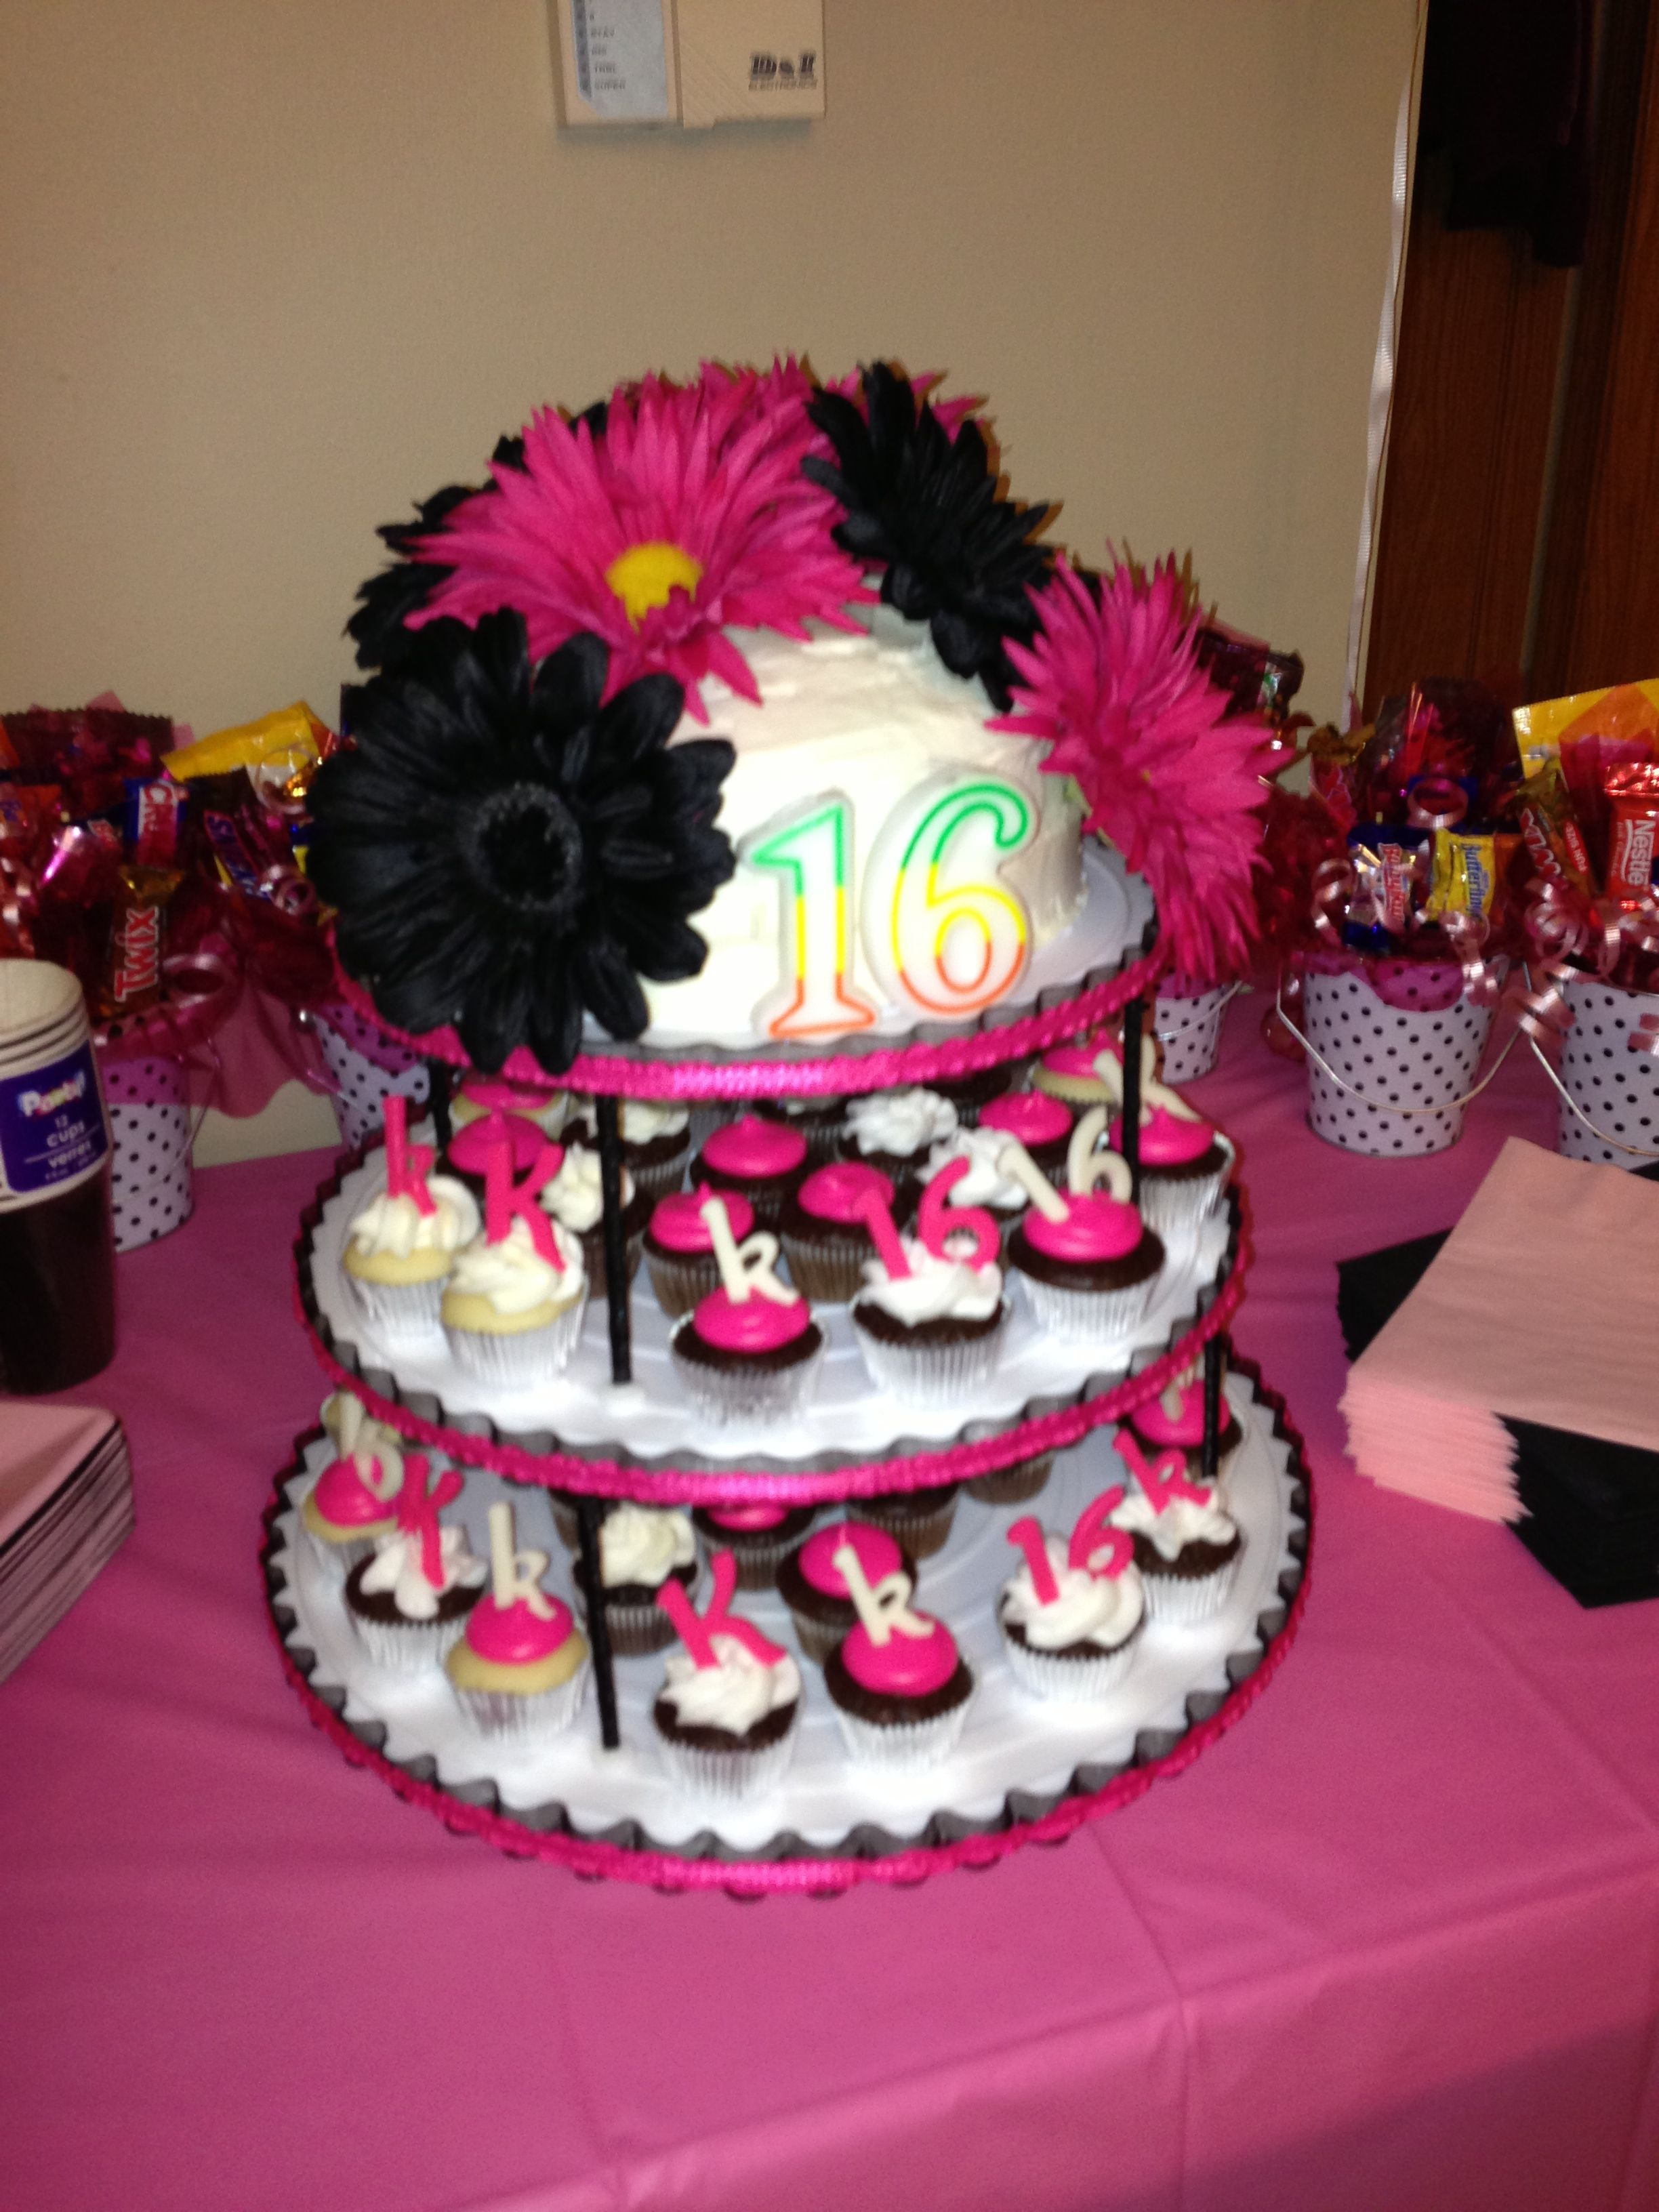 Cake Ideas For A 16th Birthday Party : Share